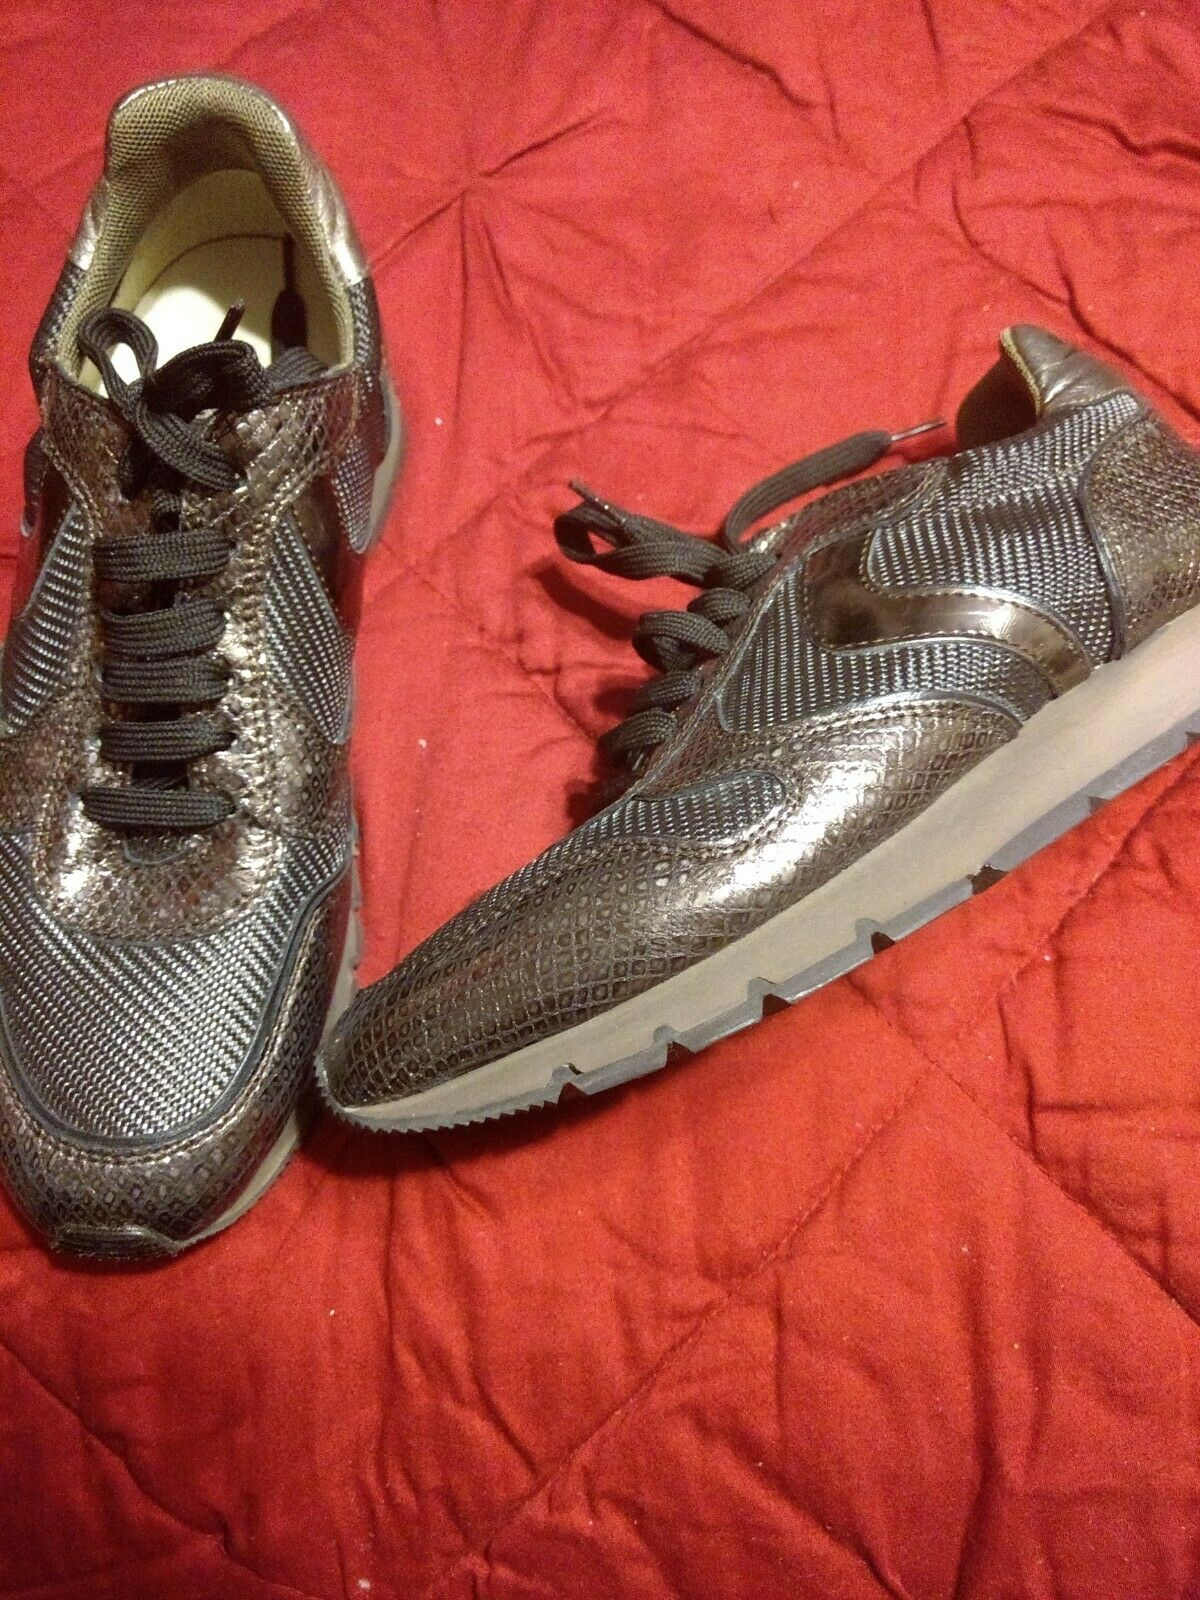 VOILE whiteHE metallic leather sneakers  walking shoes - MADE IN ITALY -S IZE 6